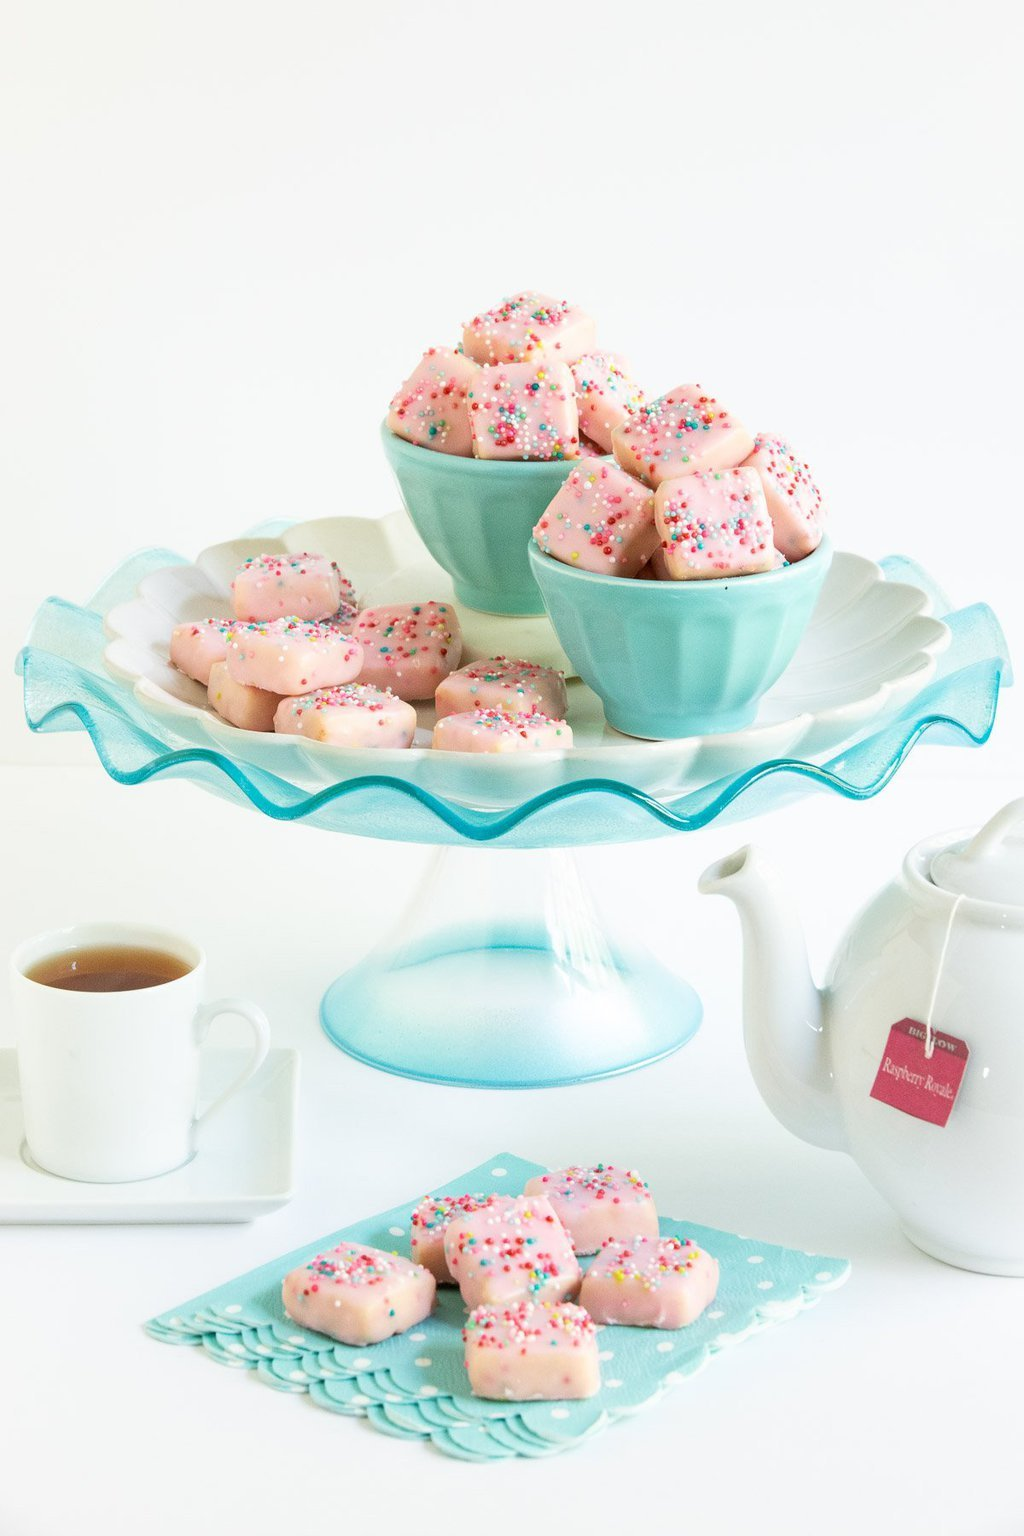 Vertical photo of Sugar Plum Fairy Shortbread Bites on a turquoise glass pedestal presentation plate with a cup of tea and a teapot in the foreground.